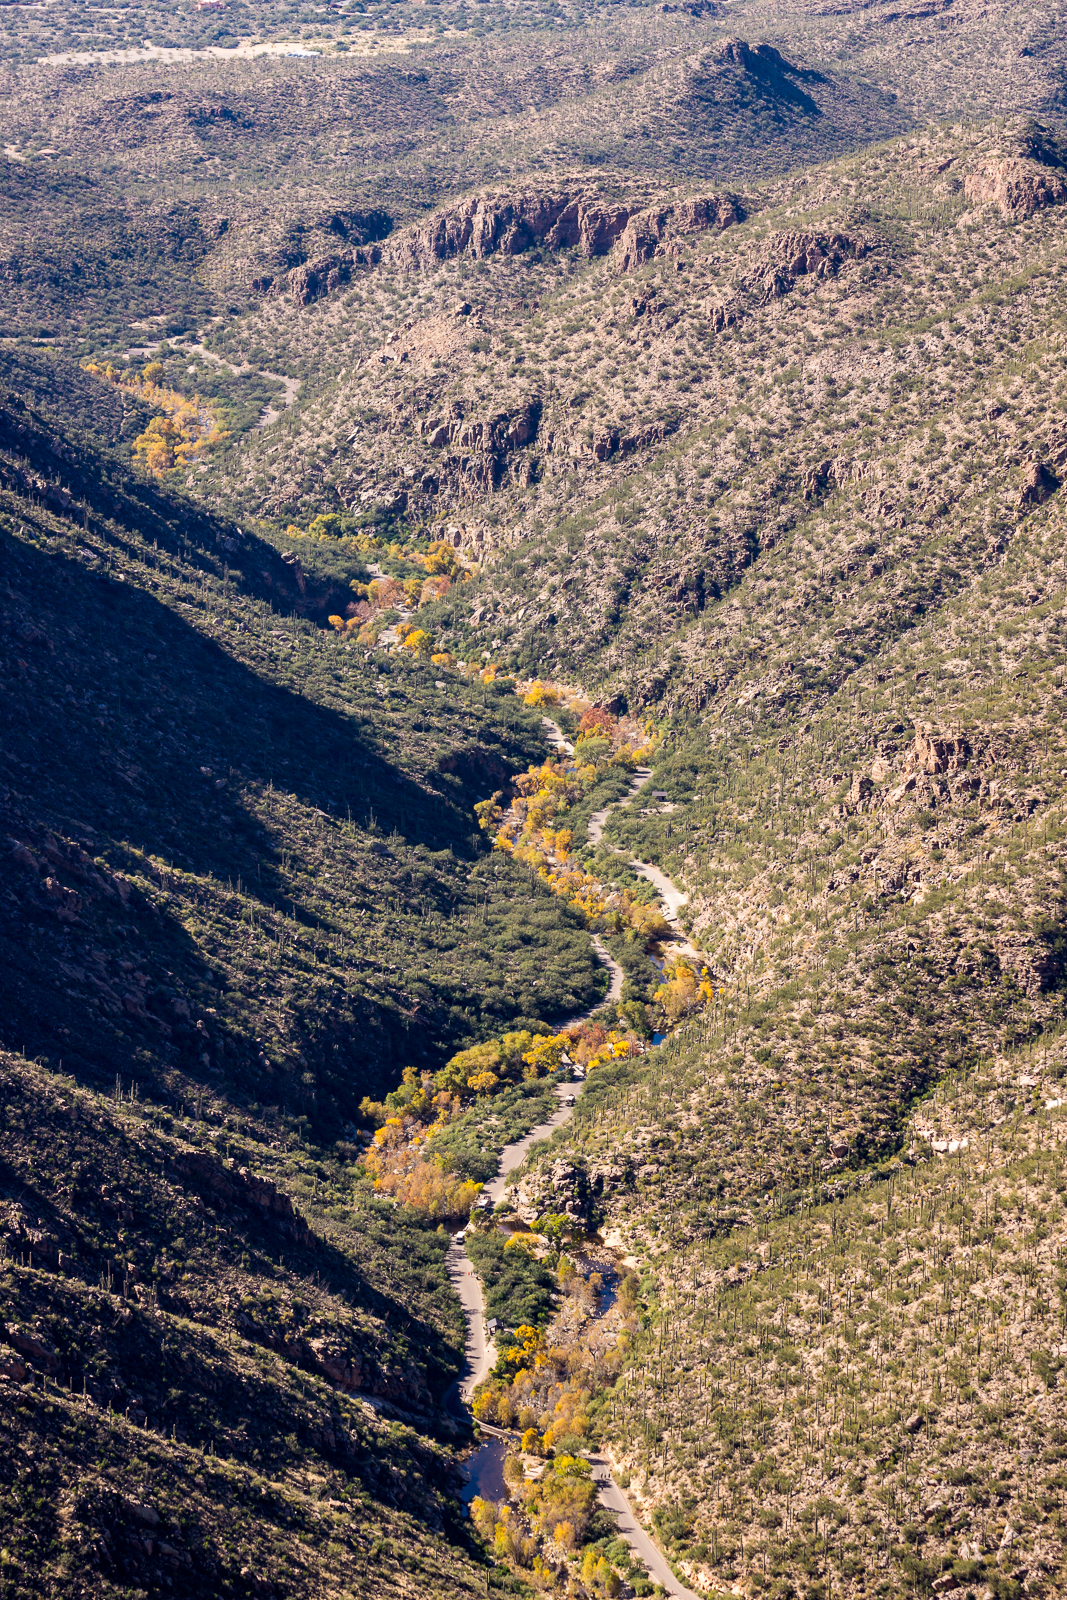 Looking down Sabino Canyon, a ribbon of color in the desert - from just below the base of Thimble Peak. November 2015.